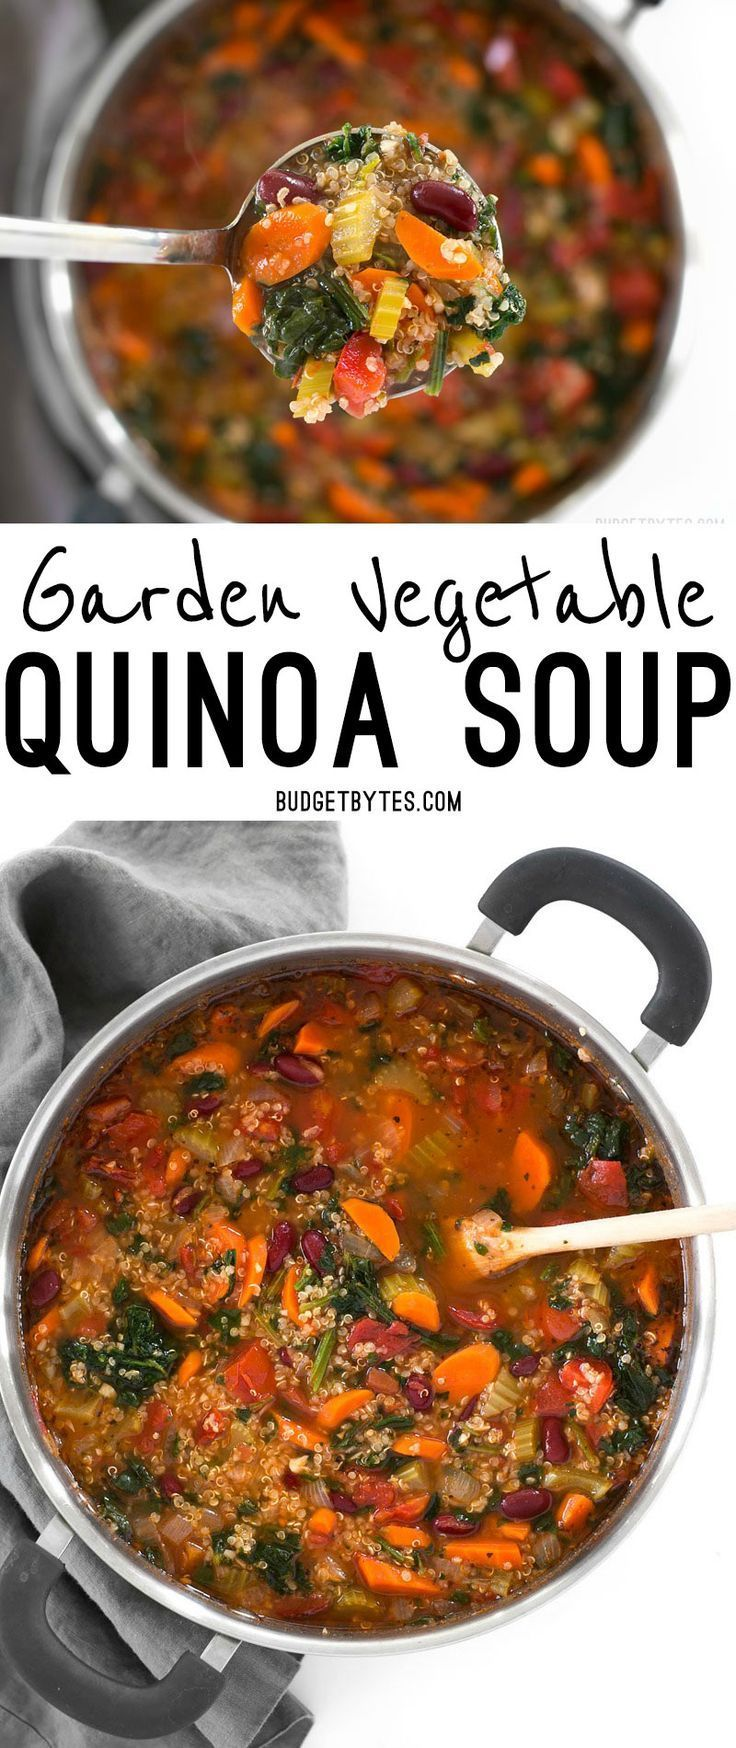 Garden Vegetable Quinoa Soup is a low calorie, high fiber, flavor packed meal perfect for your weekend meal prep.